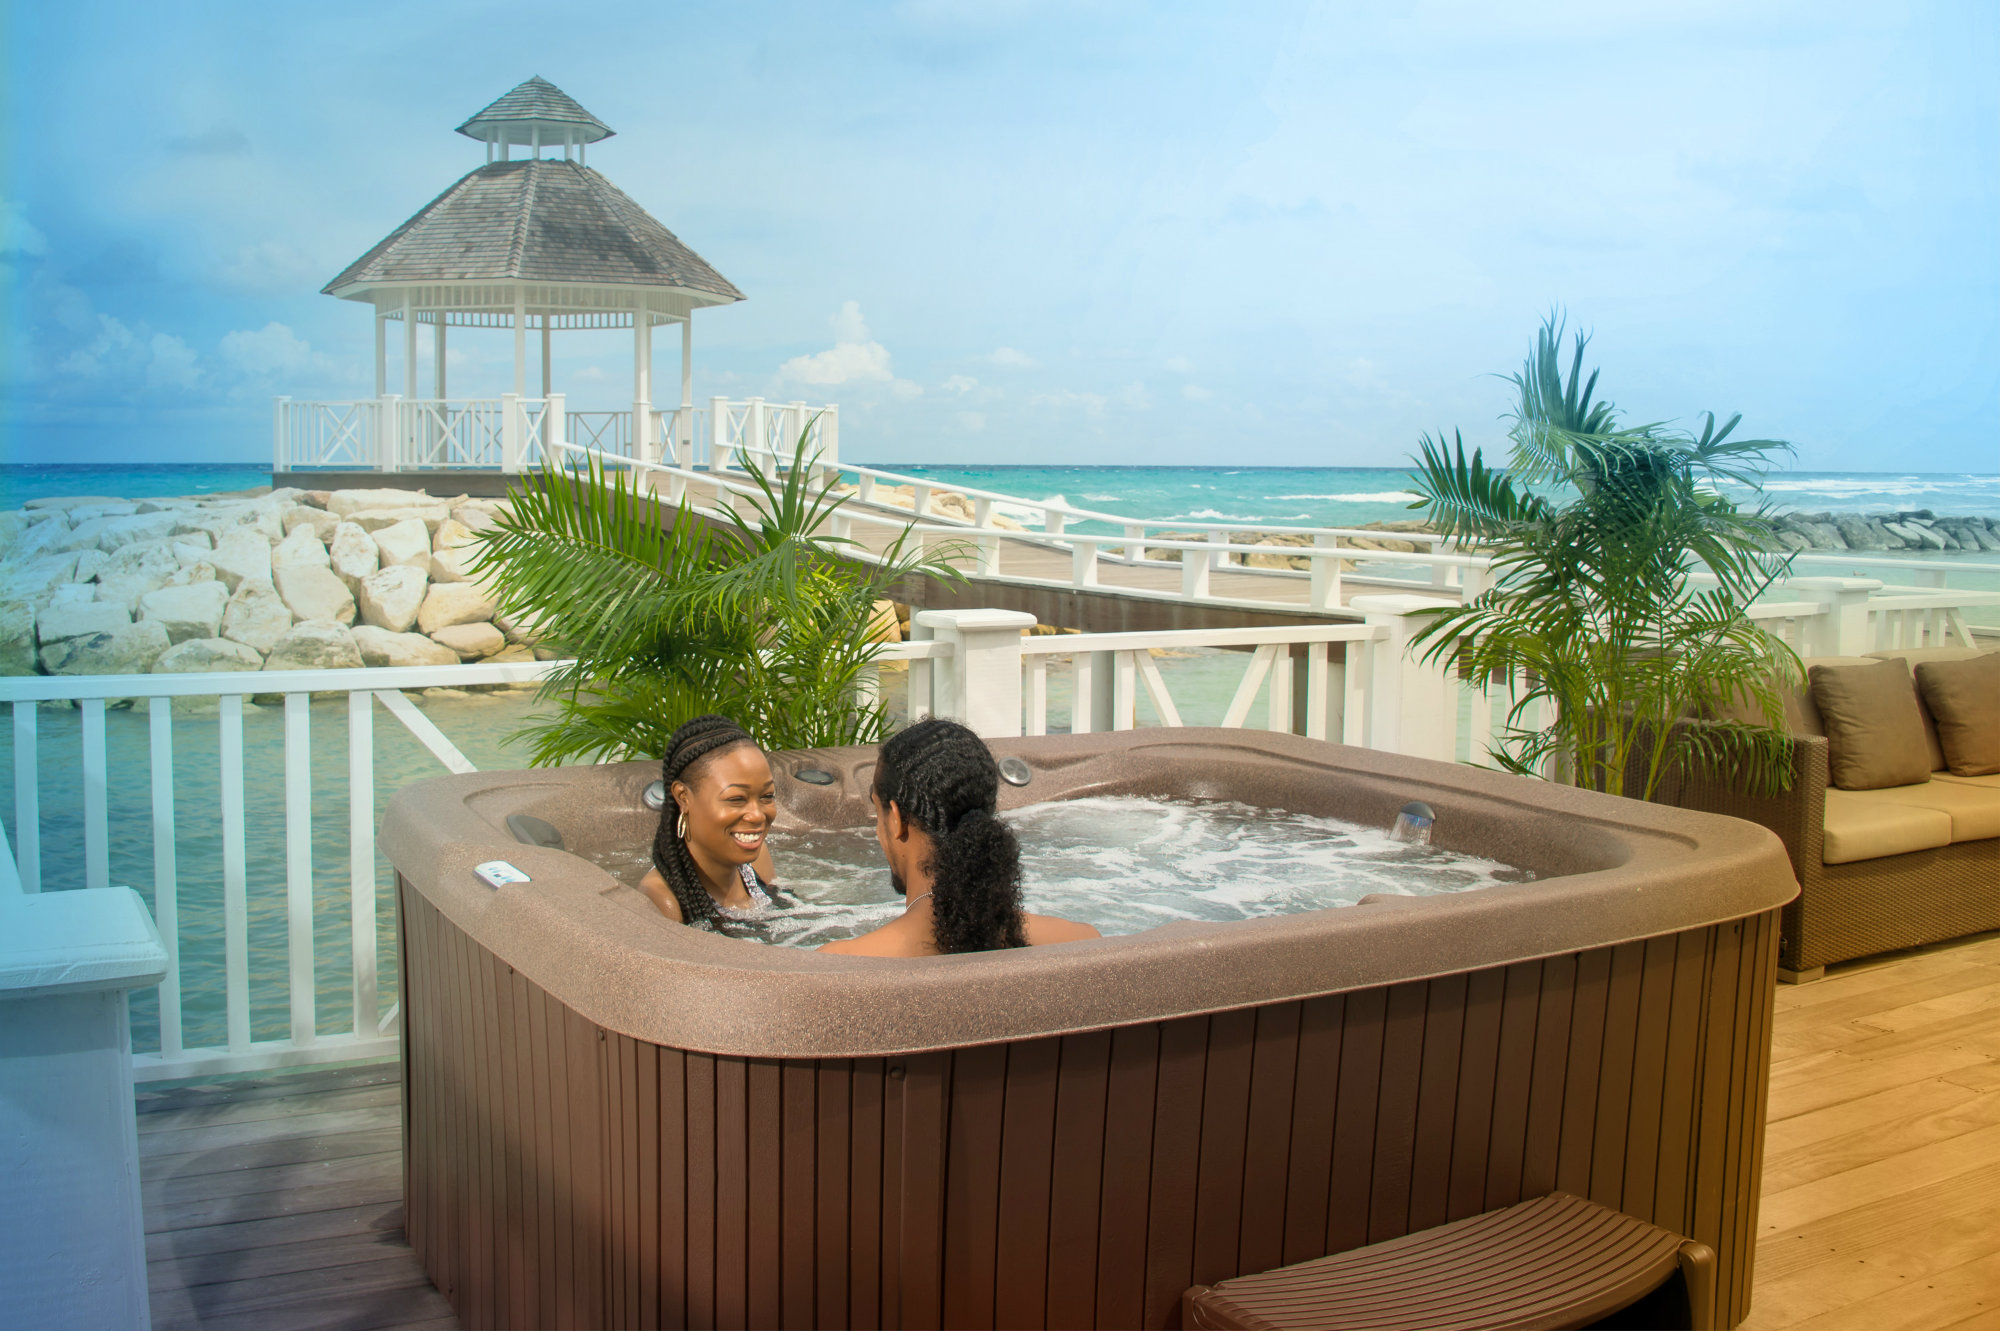 Master Spas Releases New Hot Tub Line